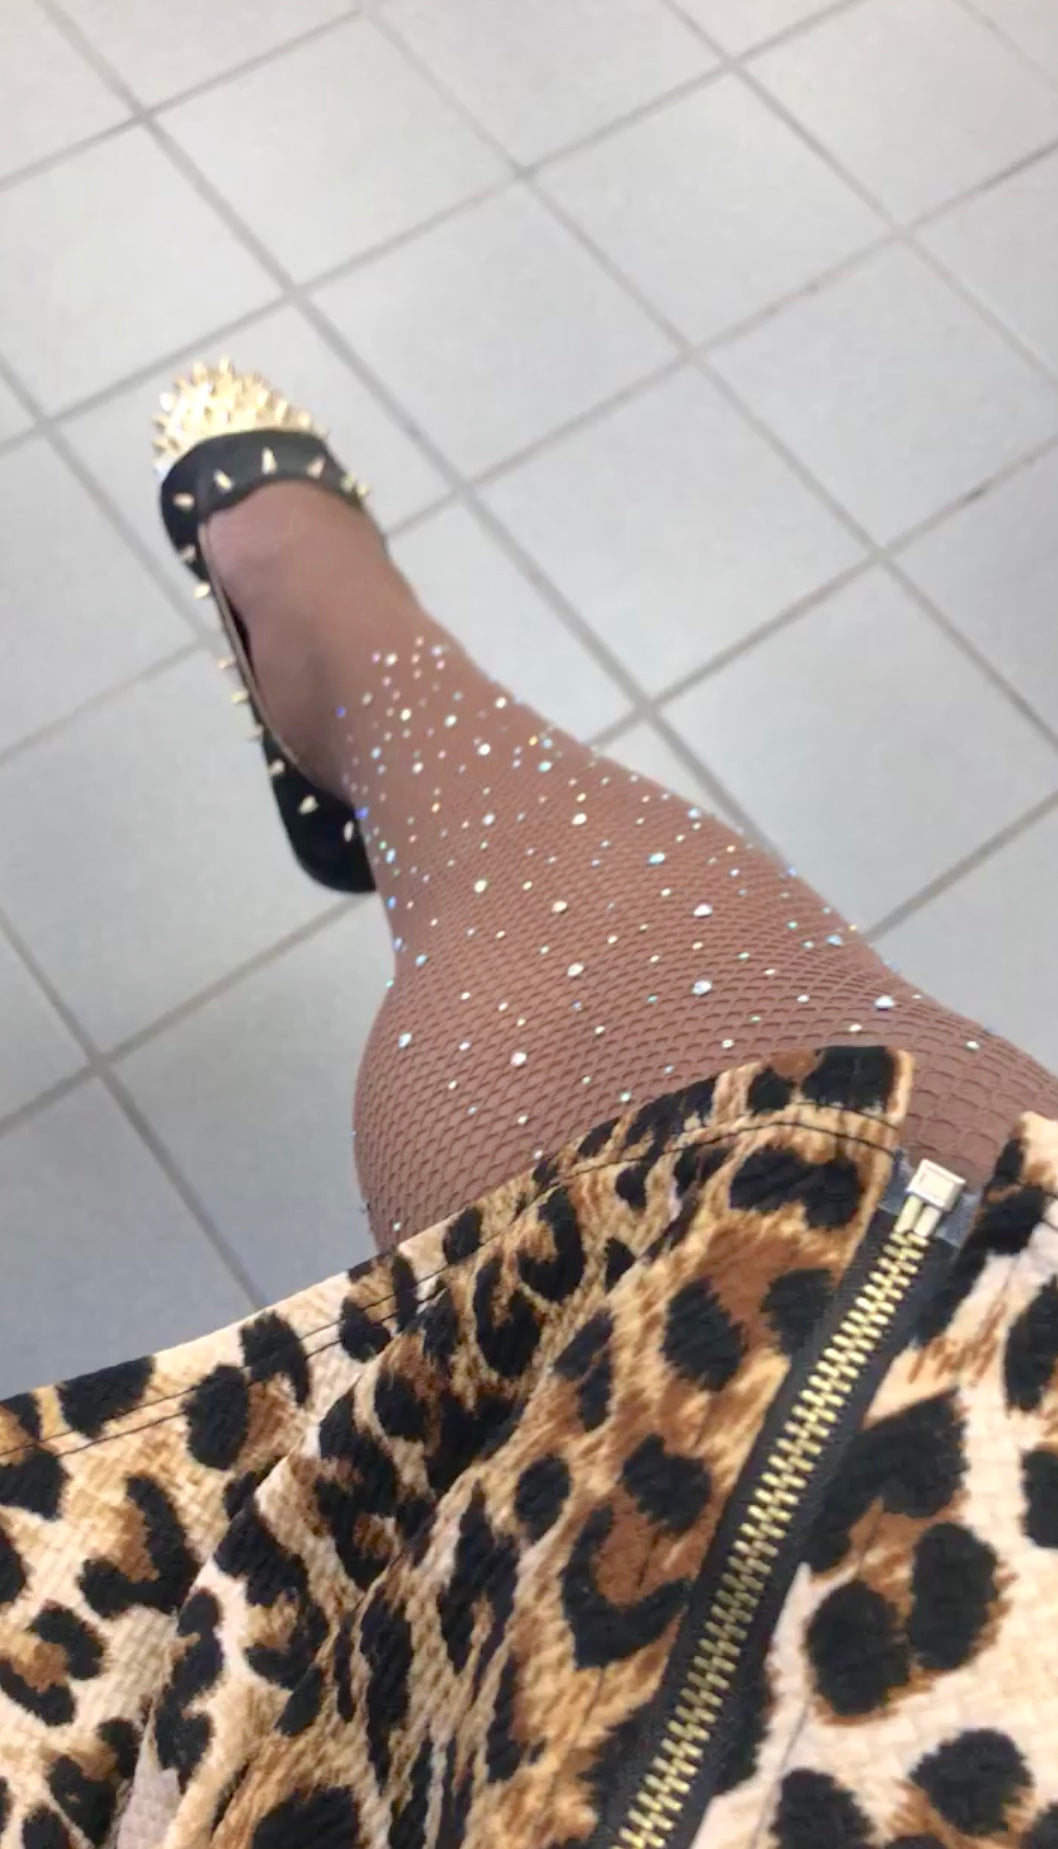 $6 | Rhinestone Fishnet Stocking | Diamond Tights